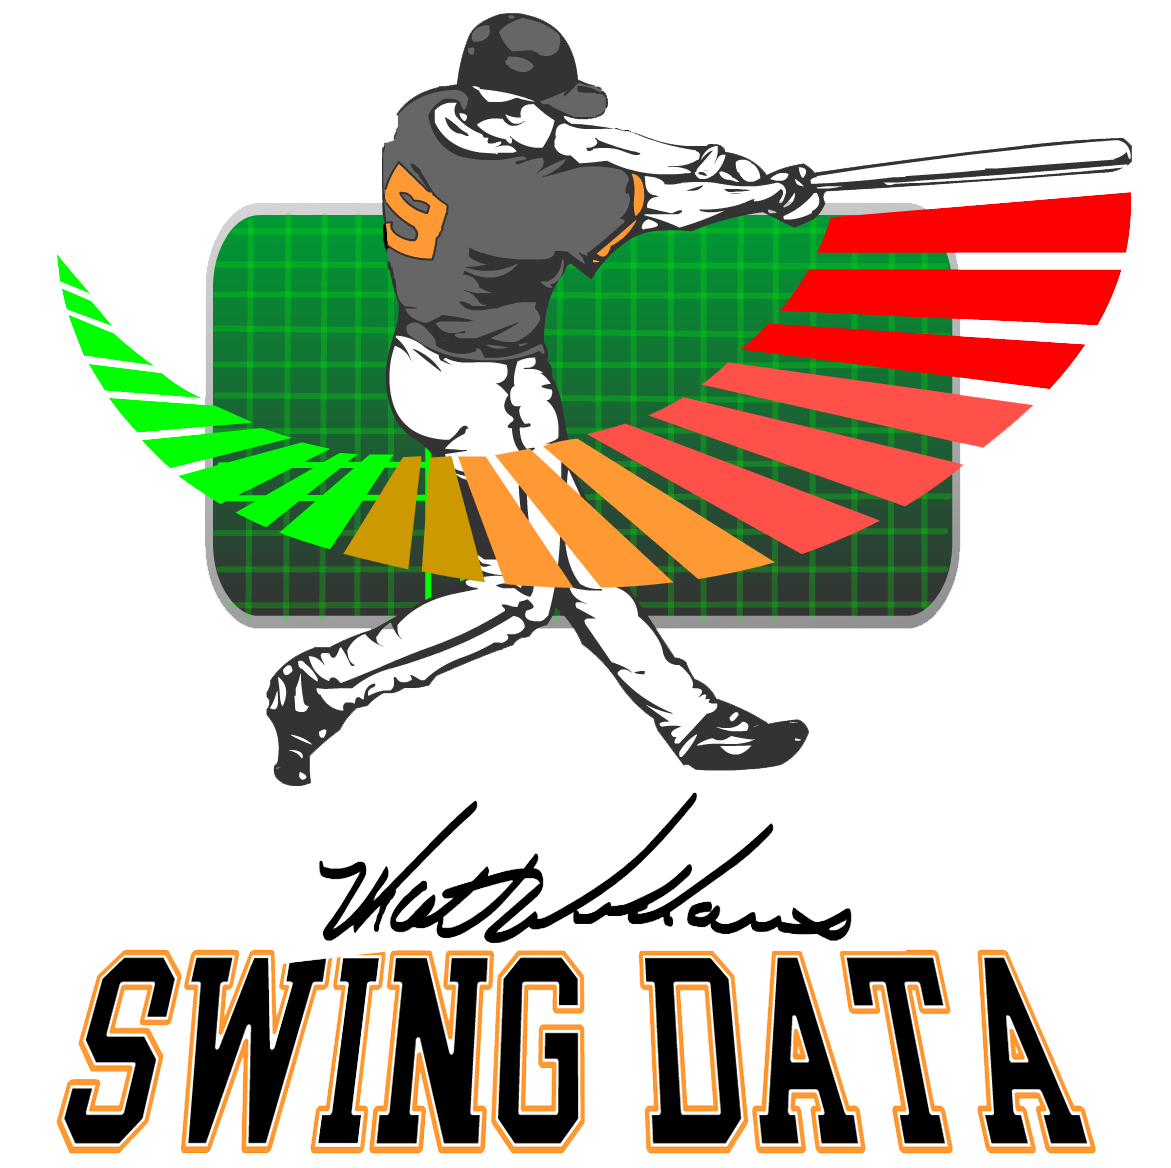 Matt Williams' Swing Data - Virtual Reality Baseball Training Application